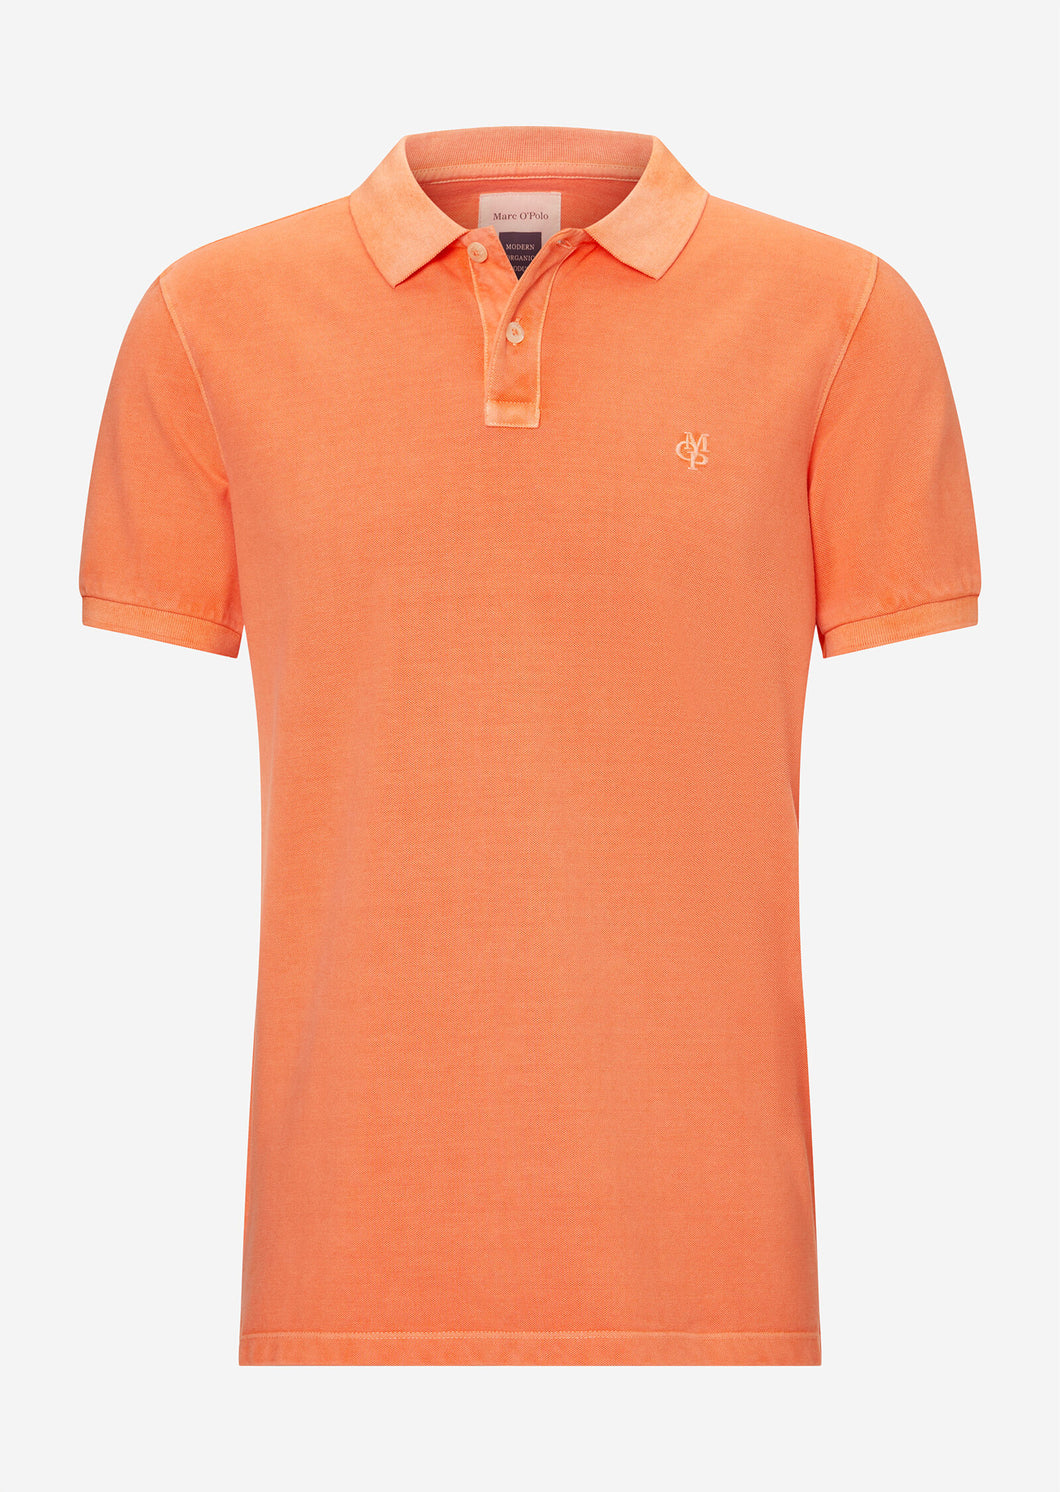 Polo, short sleeve, button placket, - M22226653024